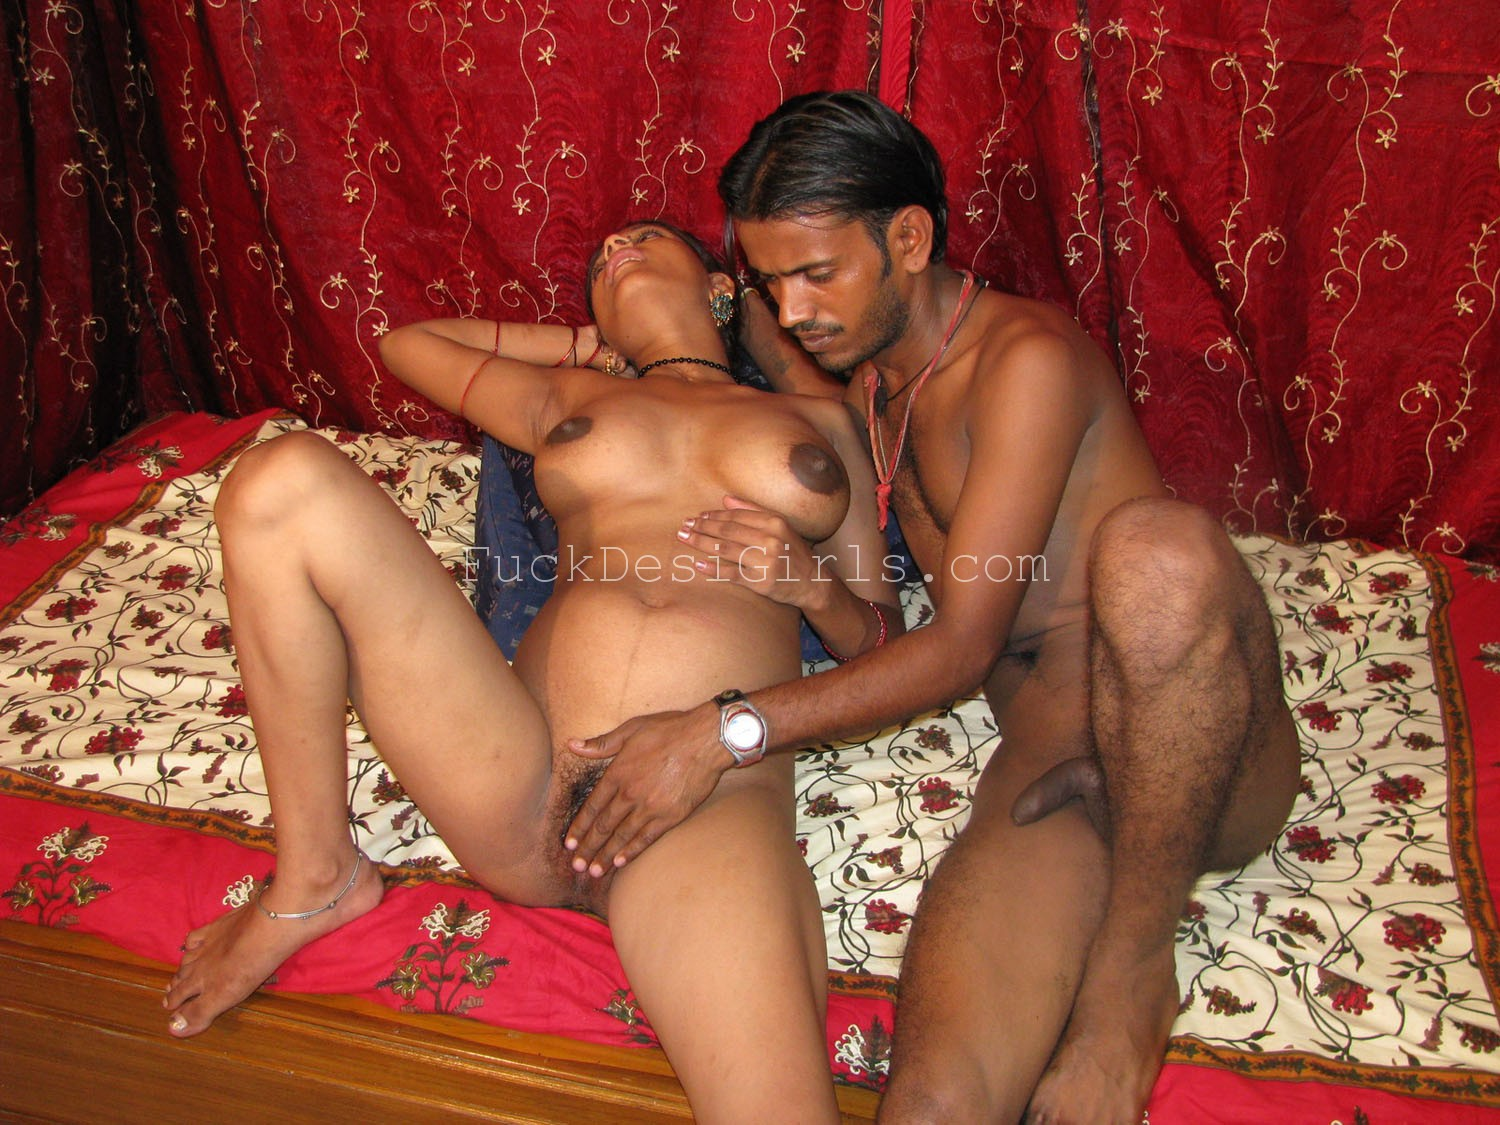 desi xxx girls